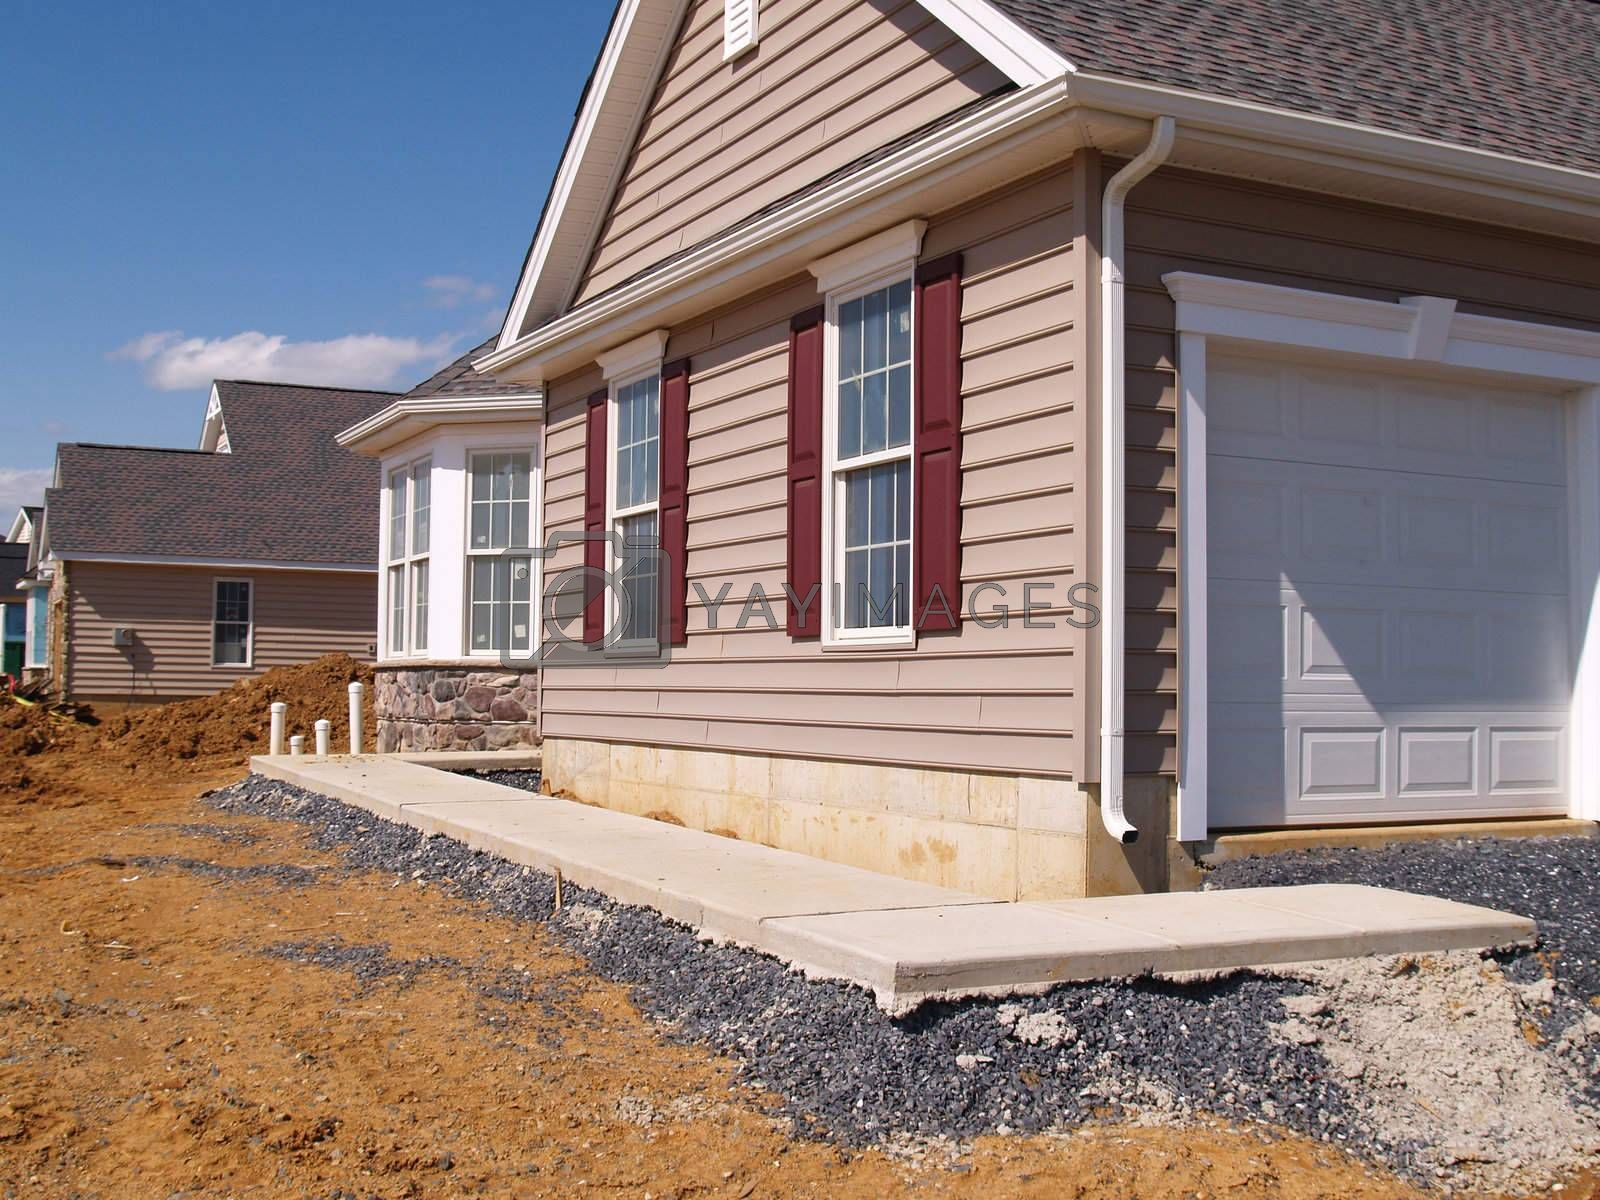 a new sidewalk poured by a new home under construction